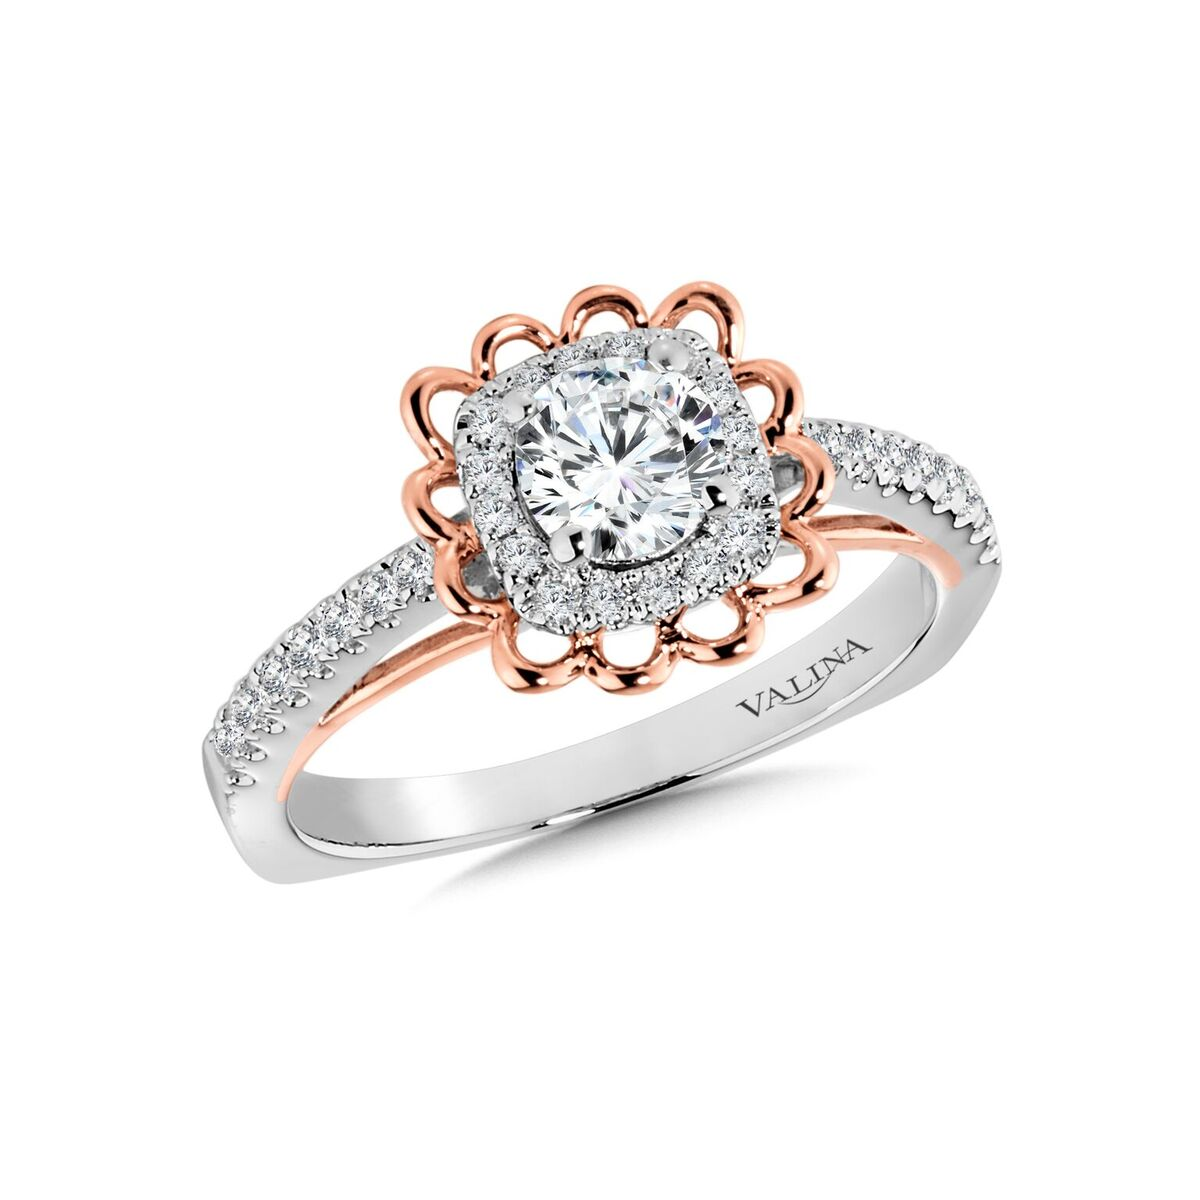 Custom Diamond Engagement Rings In Dallas Texas Wholesale Diamonds And Custom Diamond Rings In Dallas Texas 1, Shira Diamonds